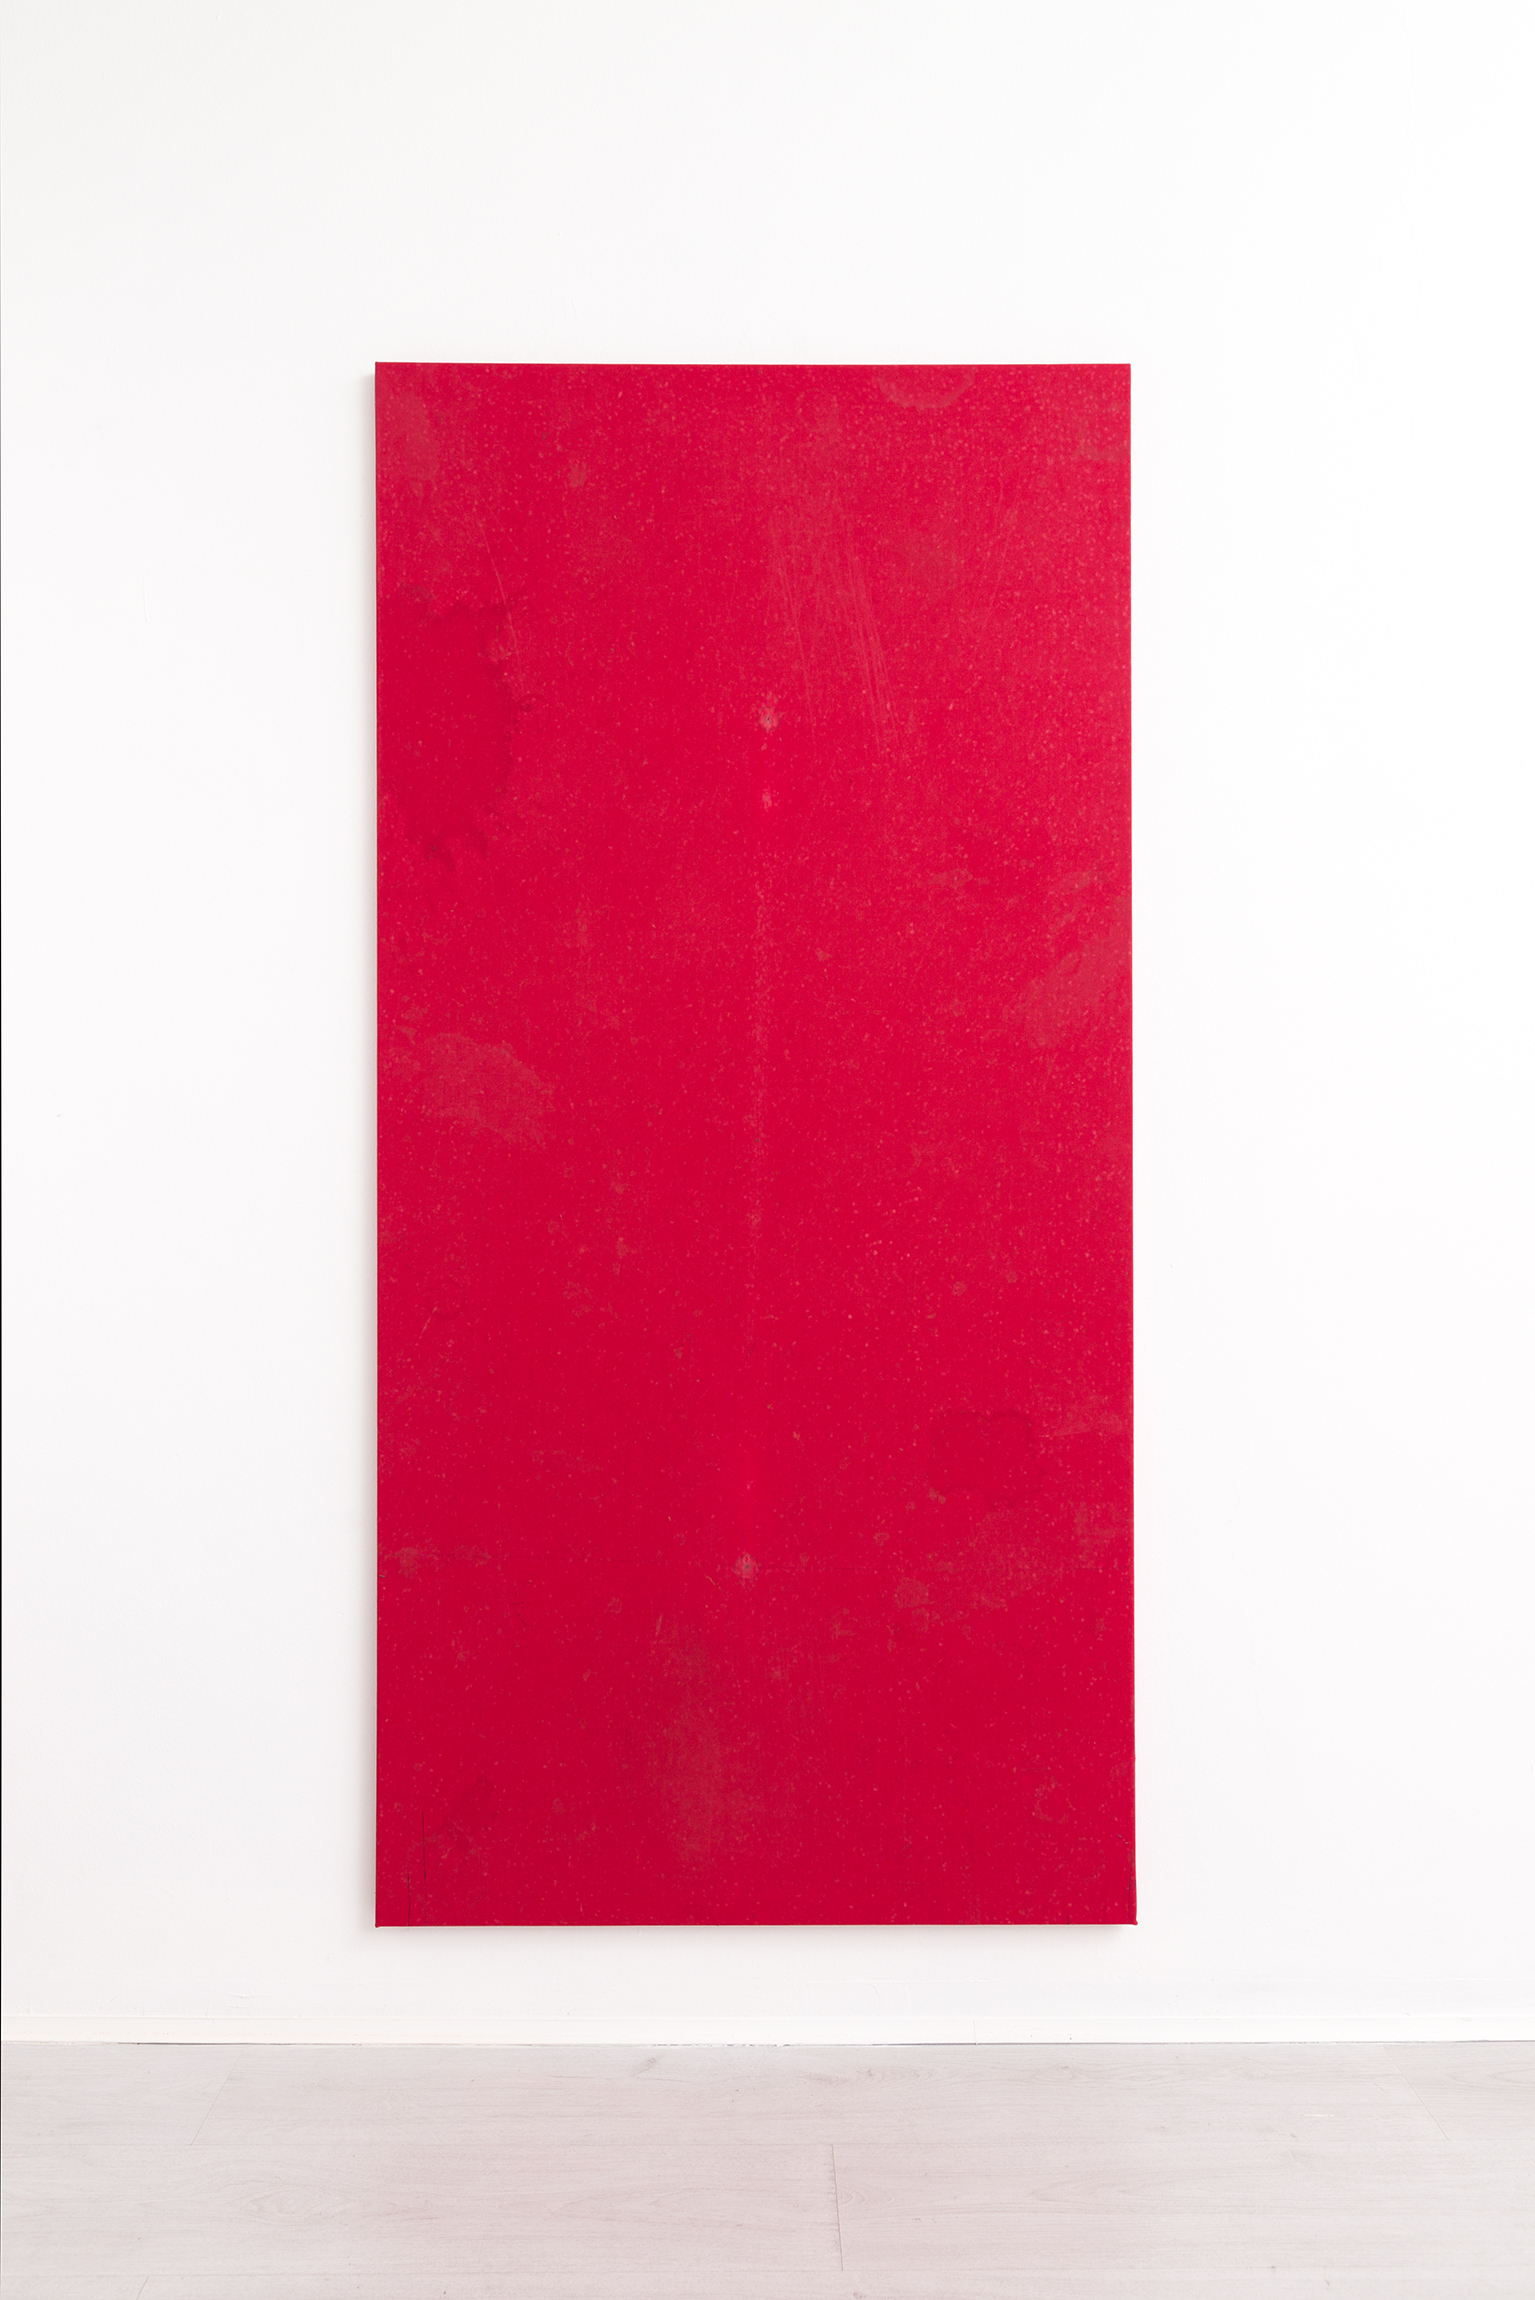 4.Simon Laureyns, used pooltable felt, 190x90cm - 2017